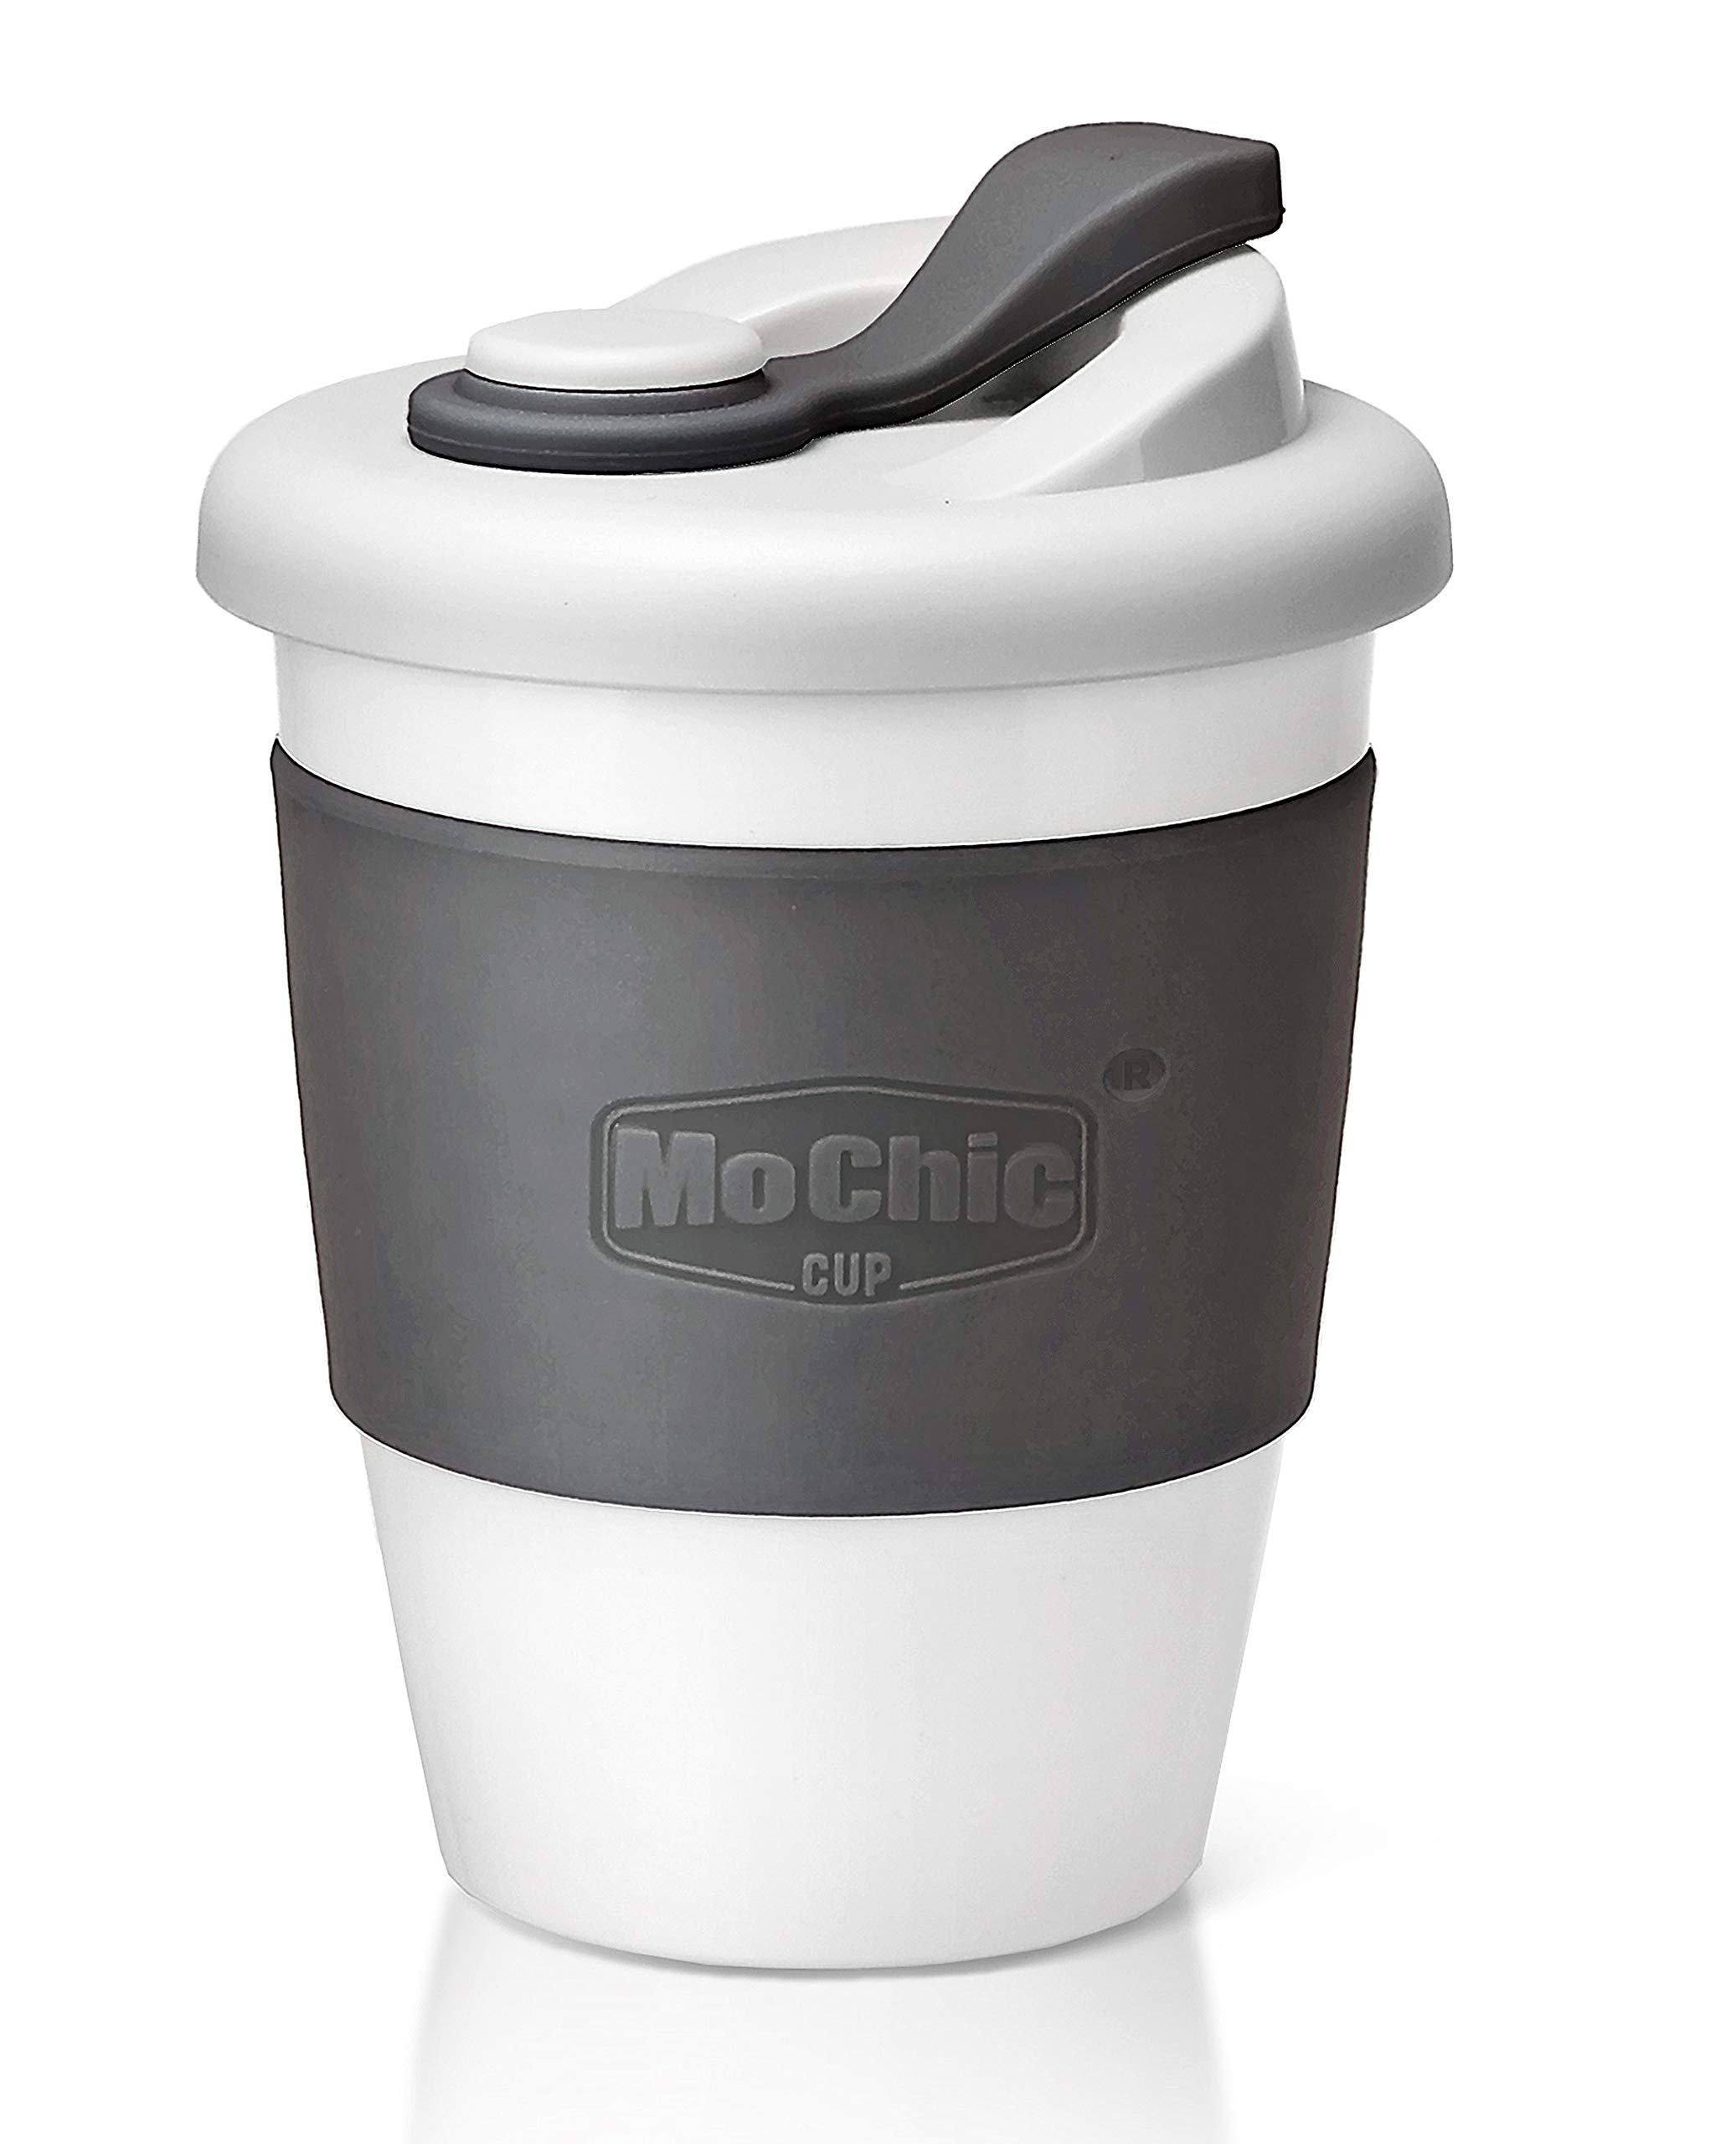 MOCHIC CUP Reusable PLA Coffee Cup with PP Lid and Silicone Sleeve Durable Tea Mug BPA Free Portable Tumbler for Work and Home (Charcoal Gray,12oz/340ml)